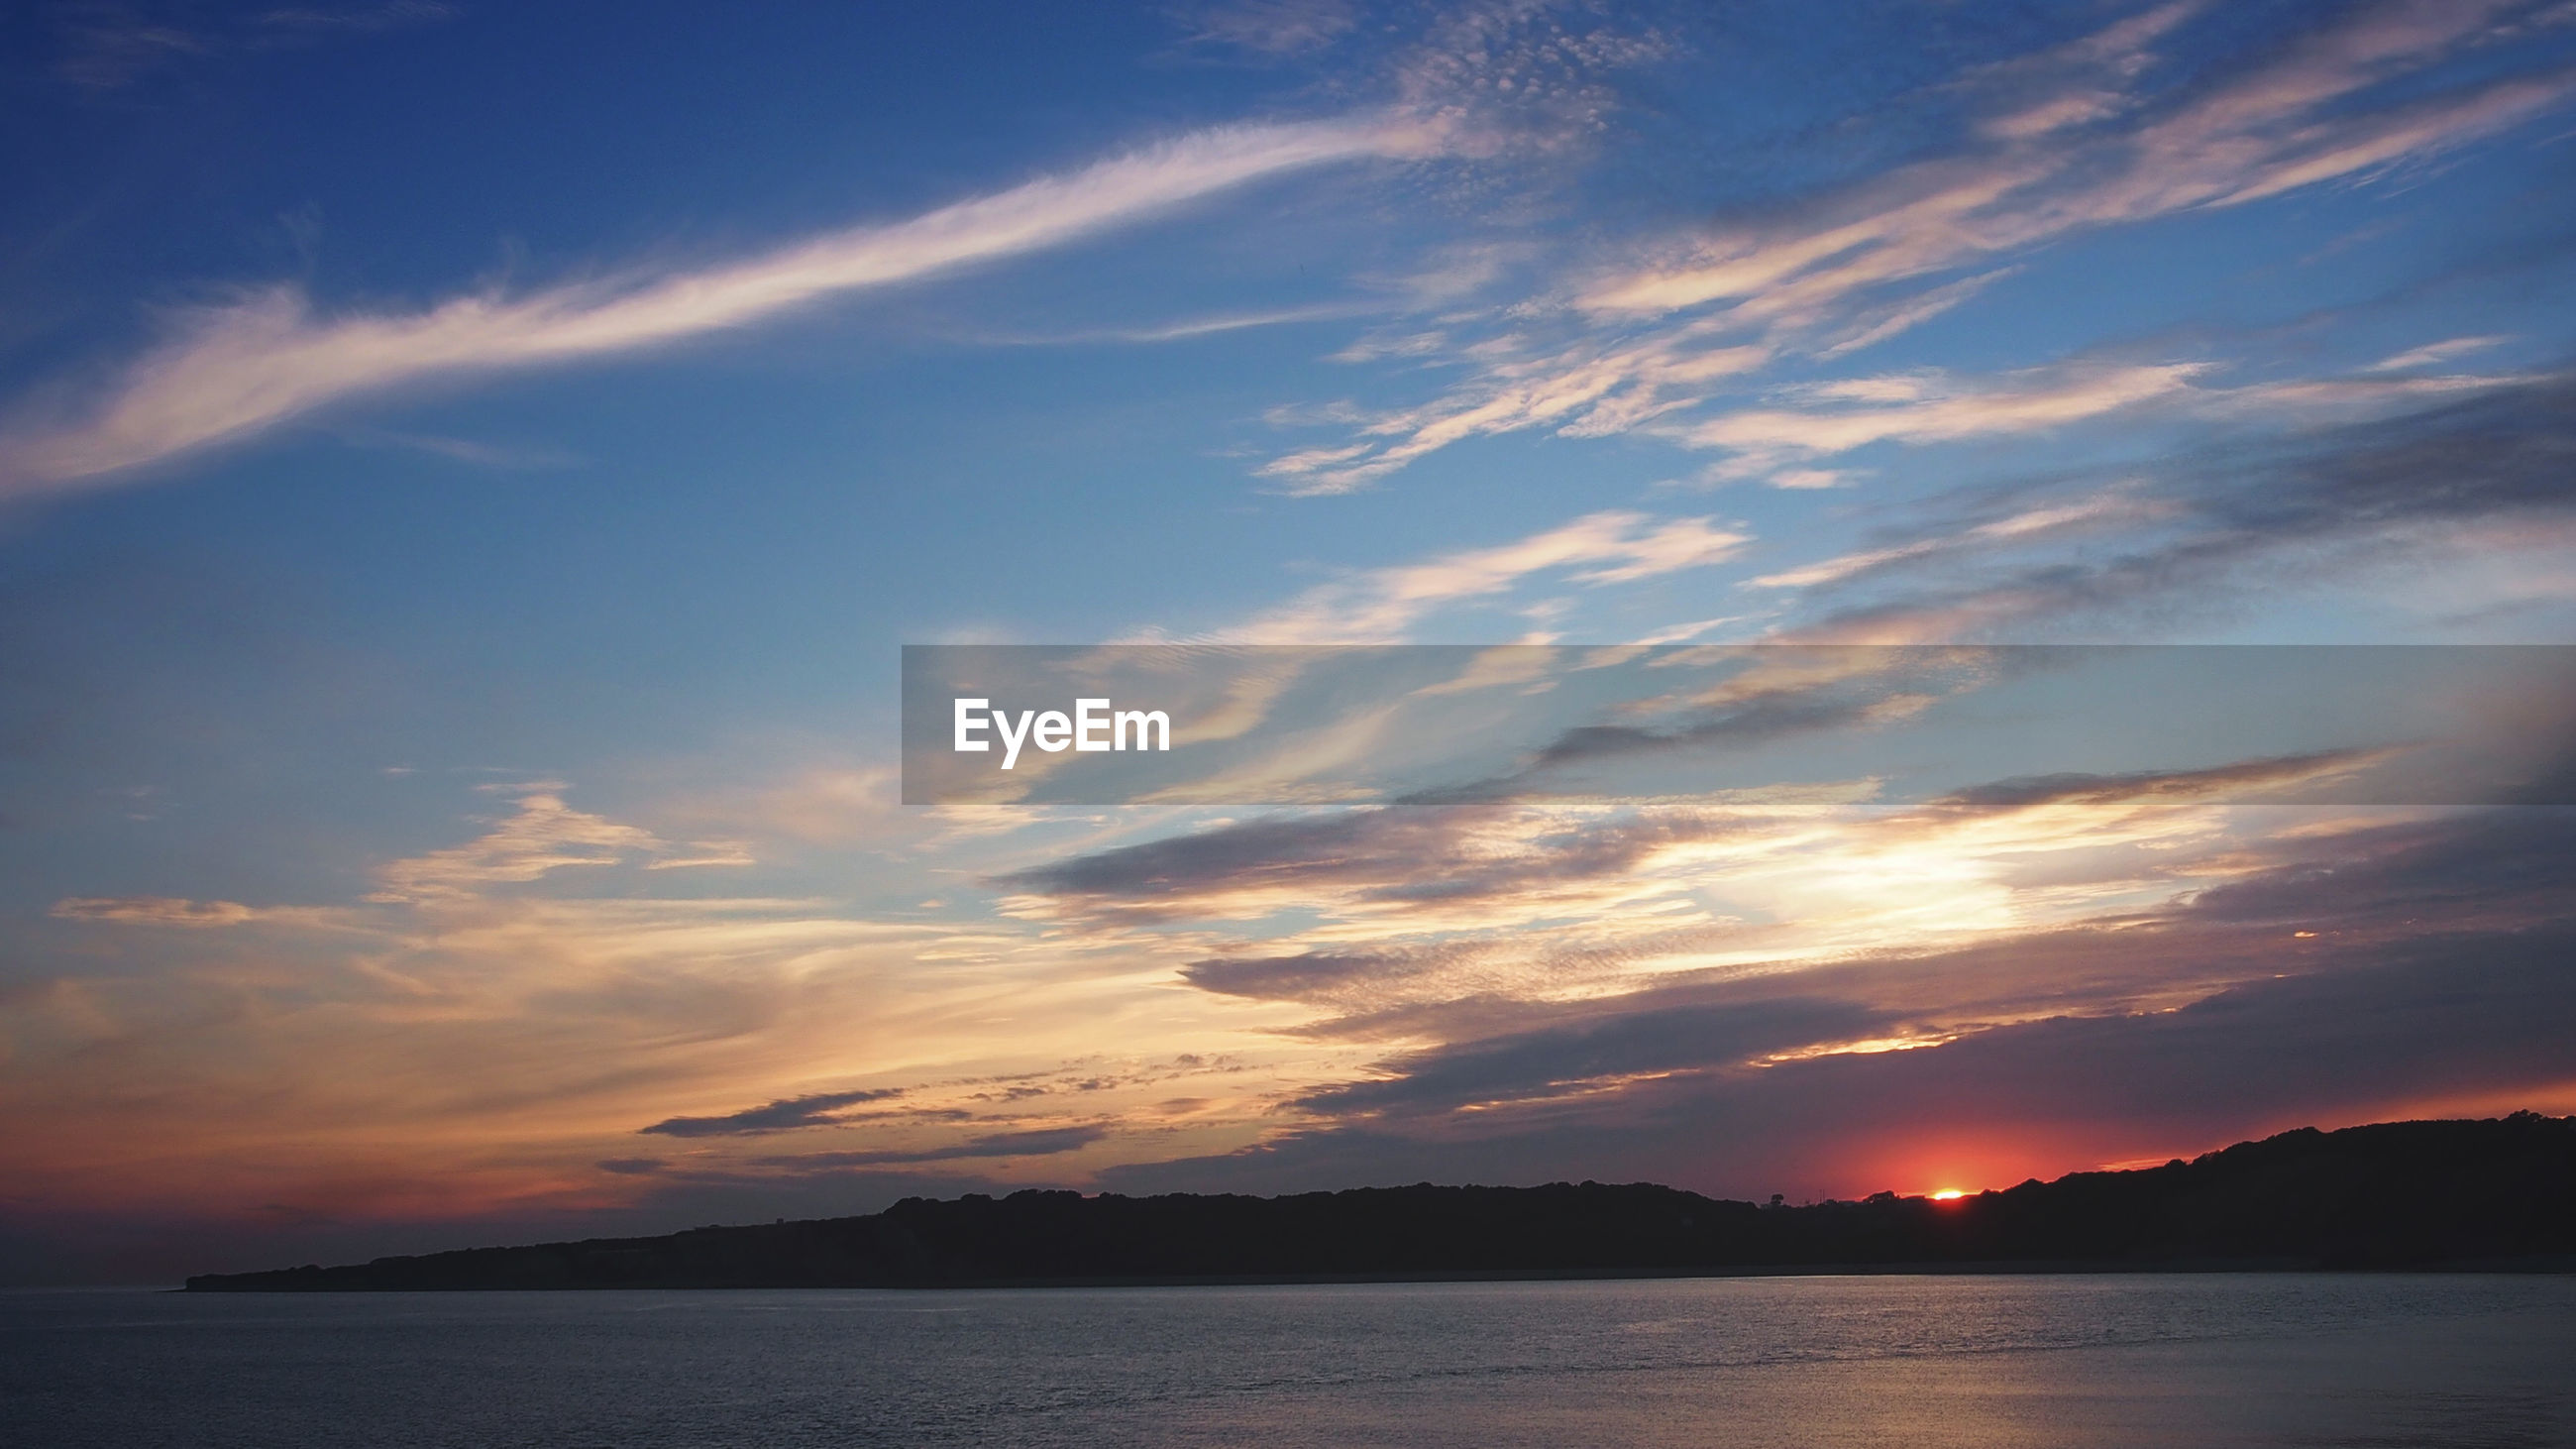 Scenic view of sea by mountains against cloudy sky during sunset